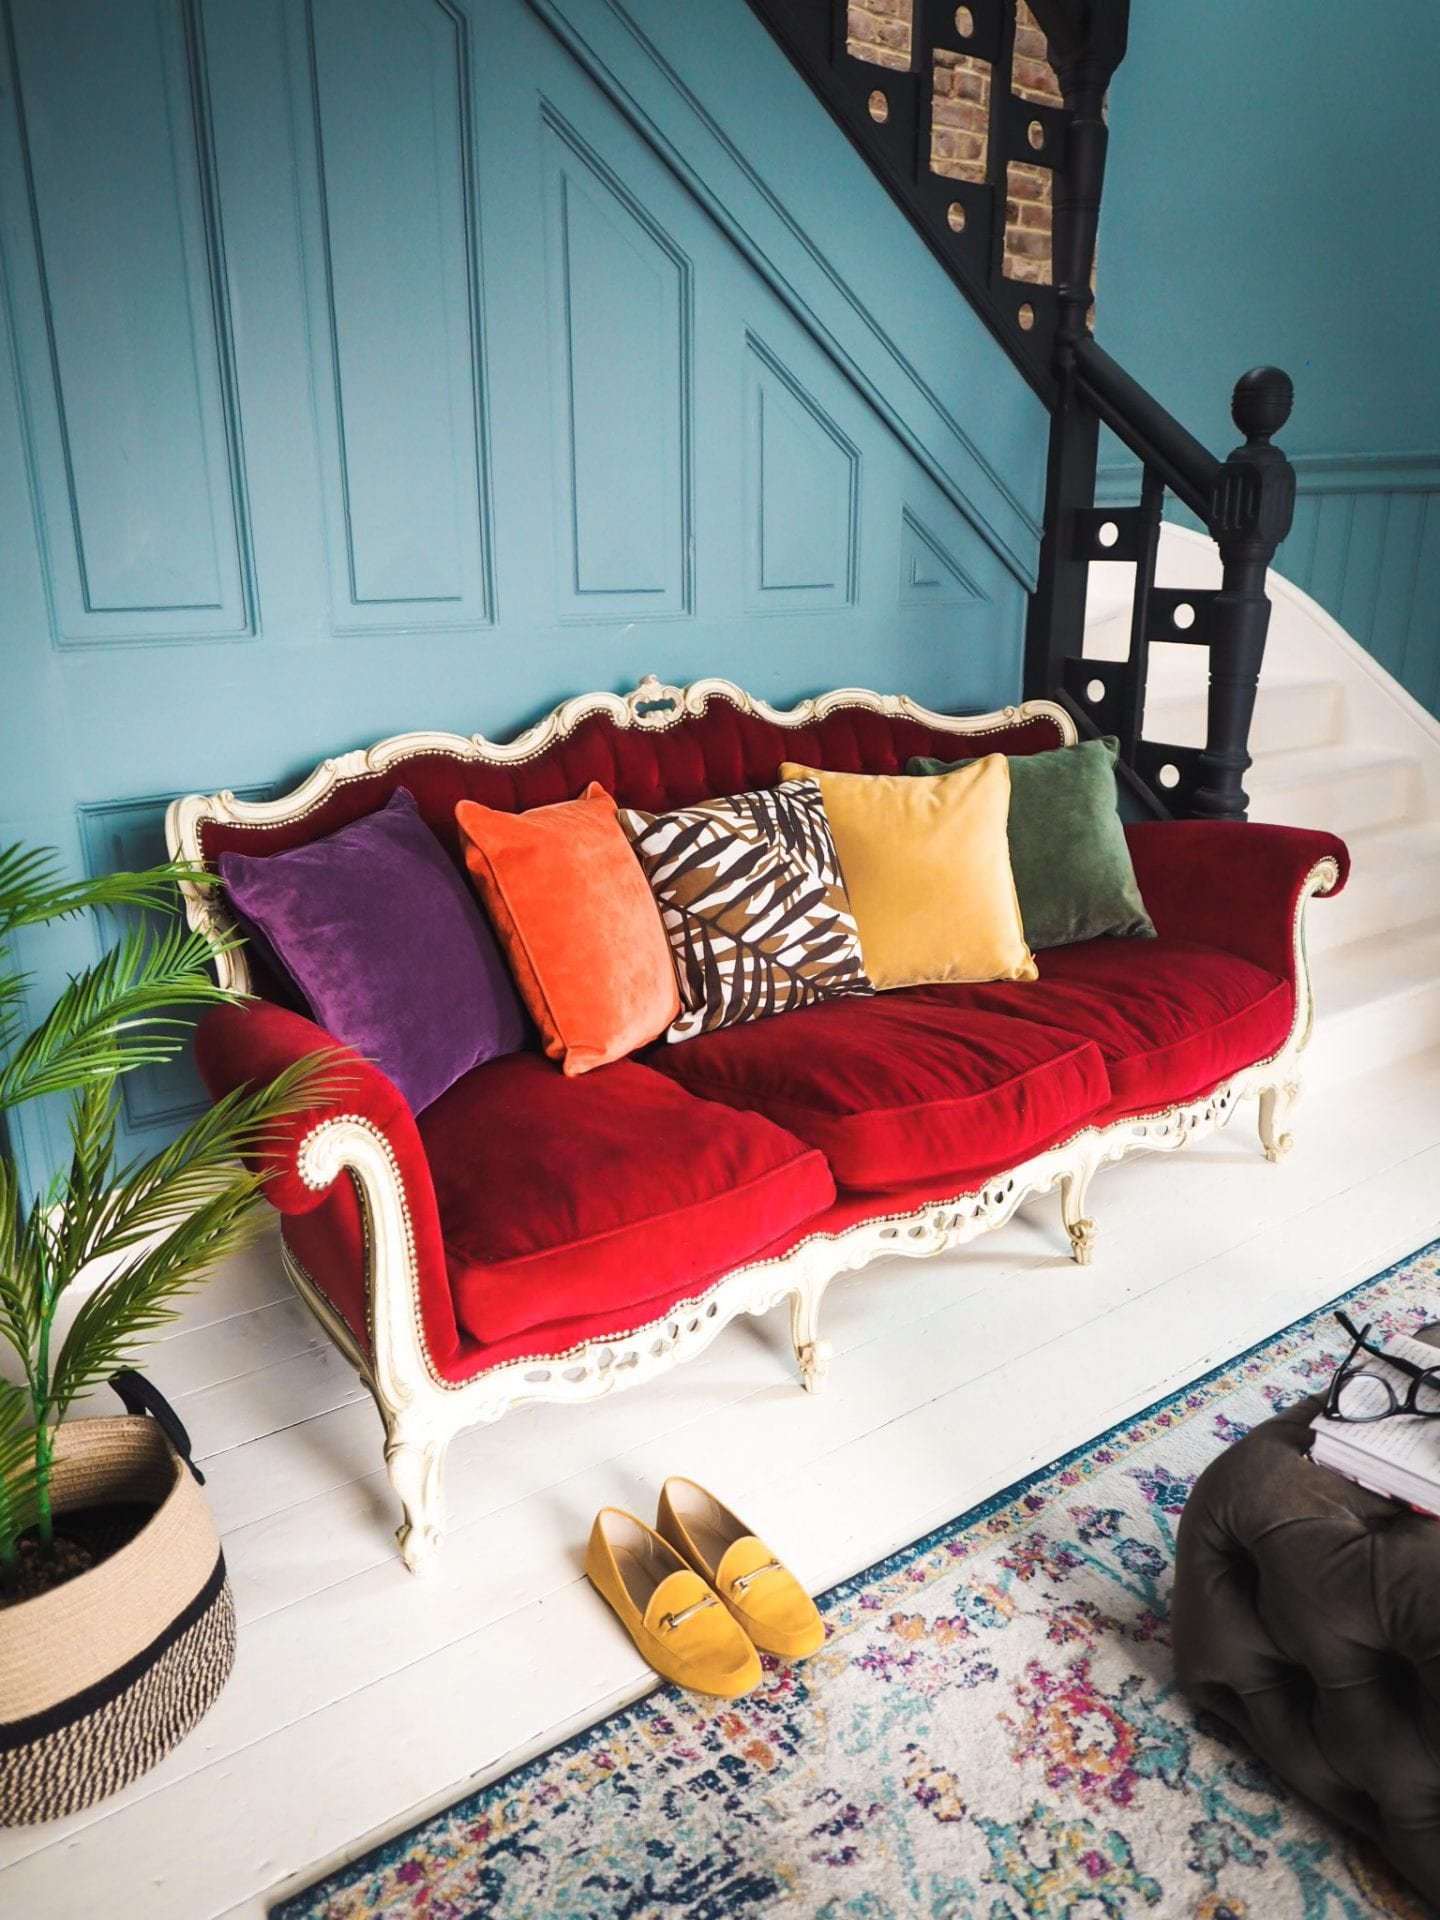 fashion for lunch blog home living room labelsforlunch vintage rococco sofa matalan cushions